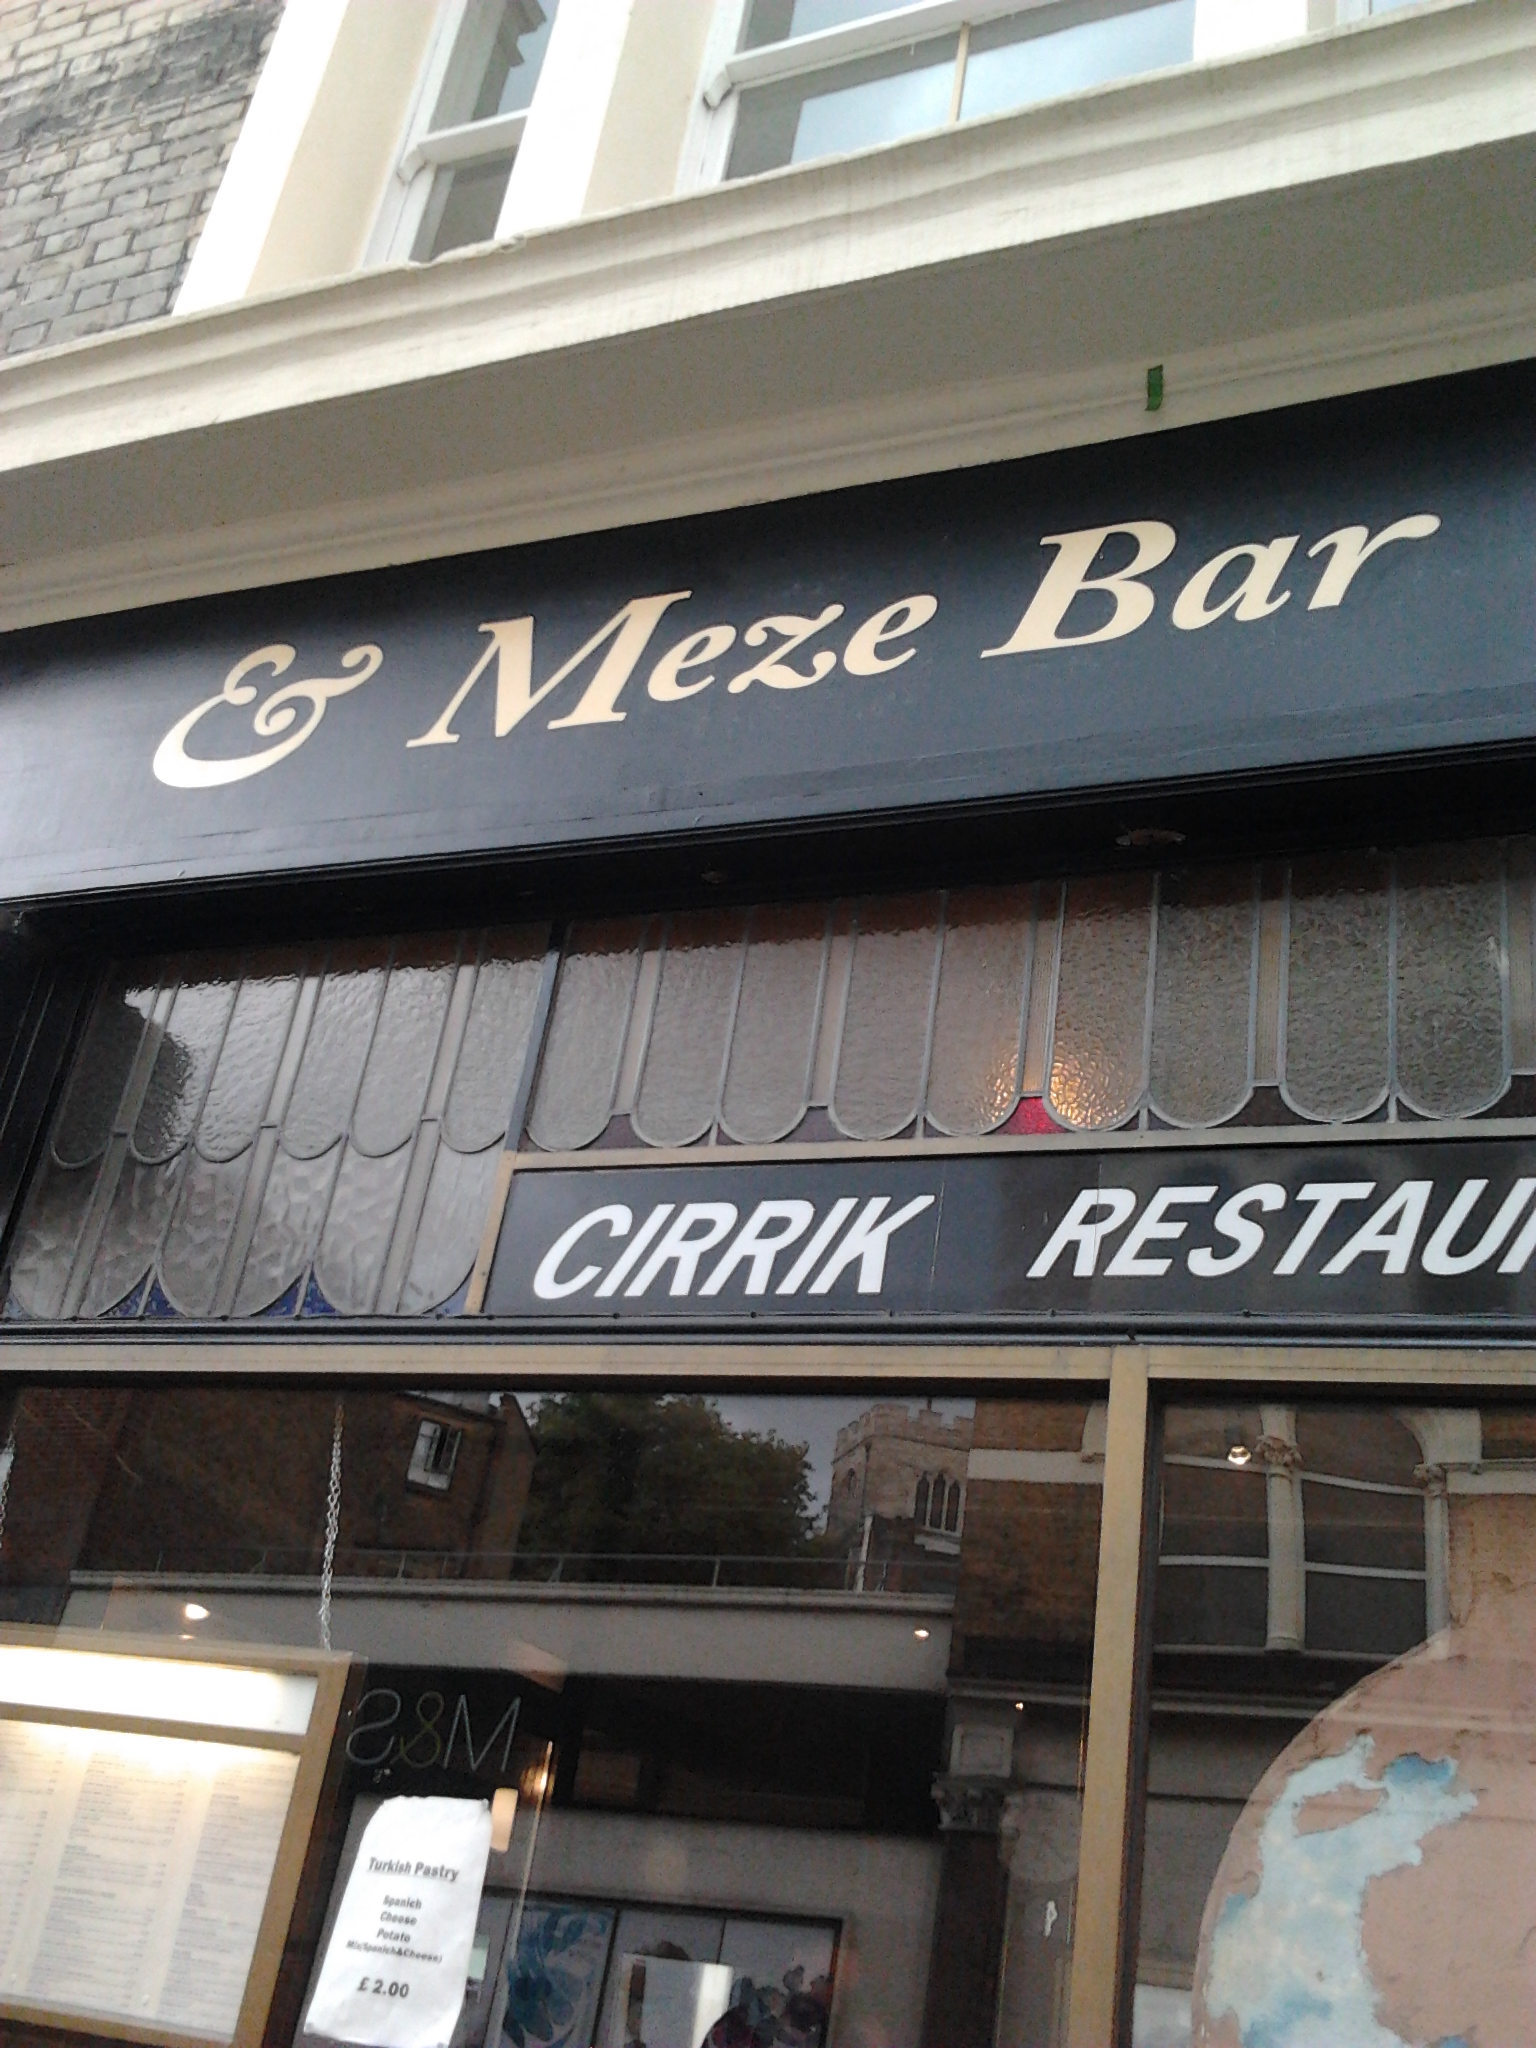 Meze Bar NGS Traditional Signwriters, London